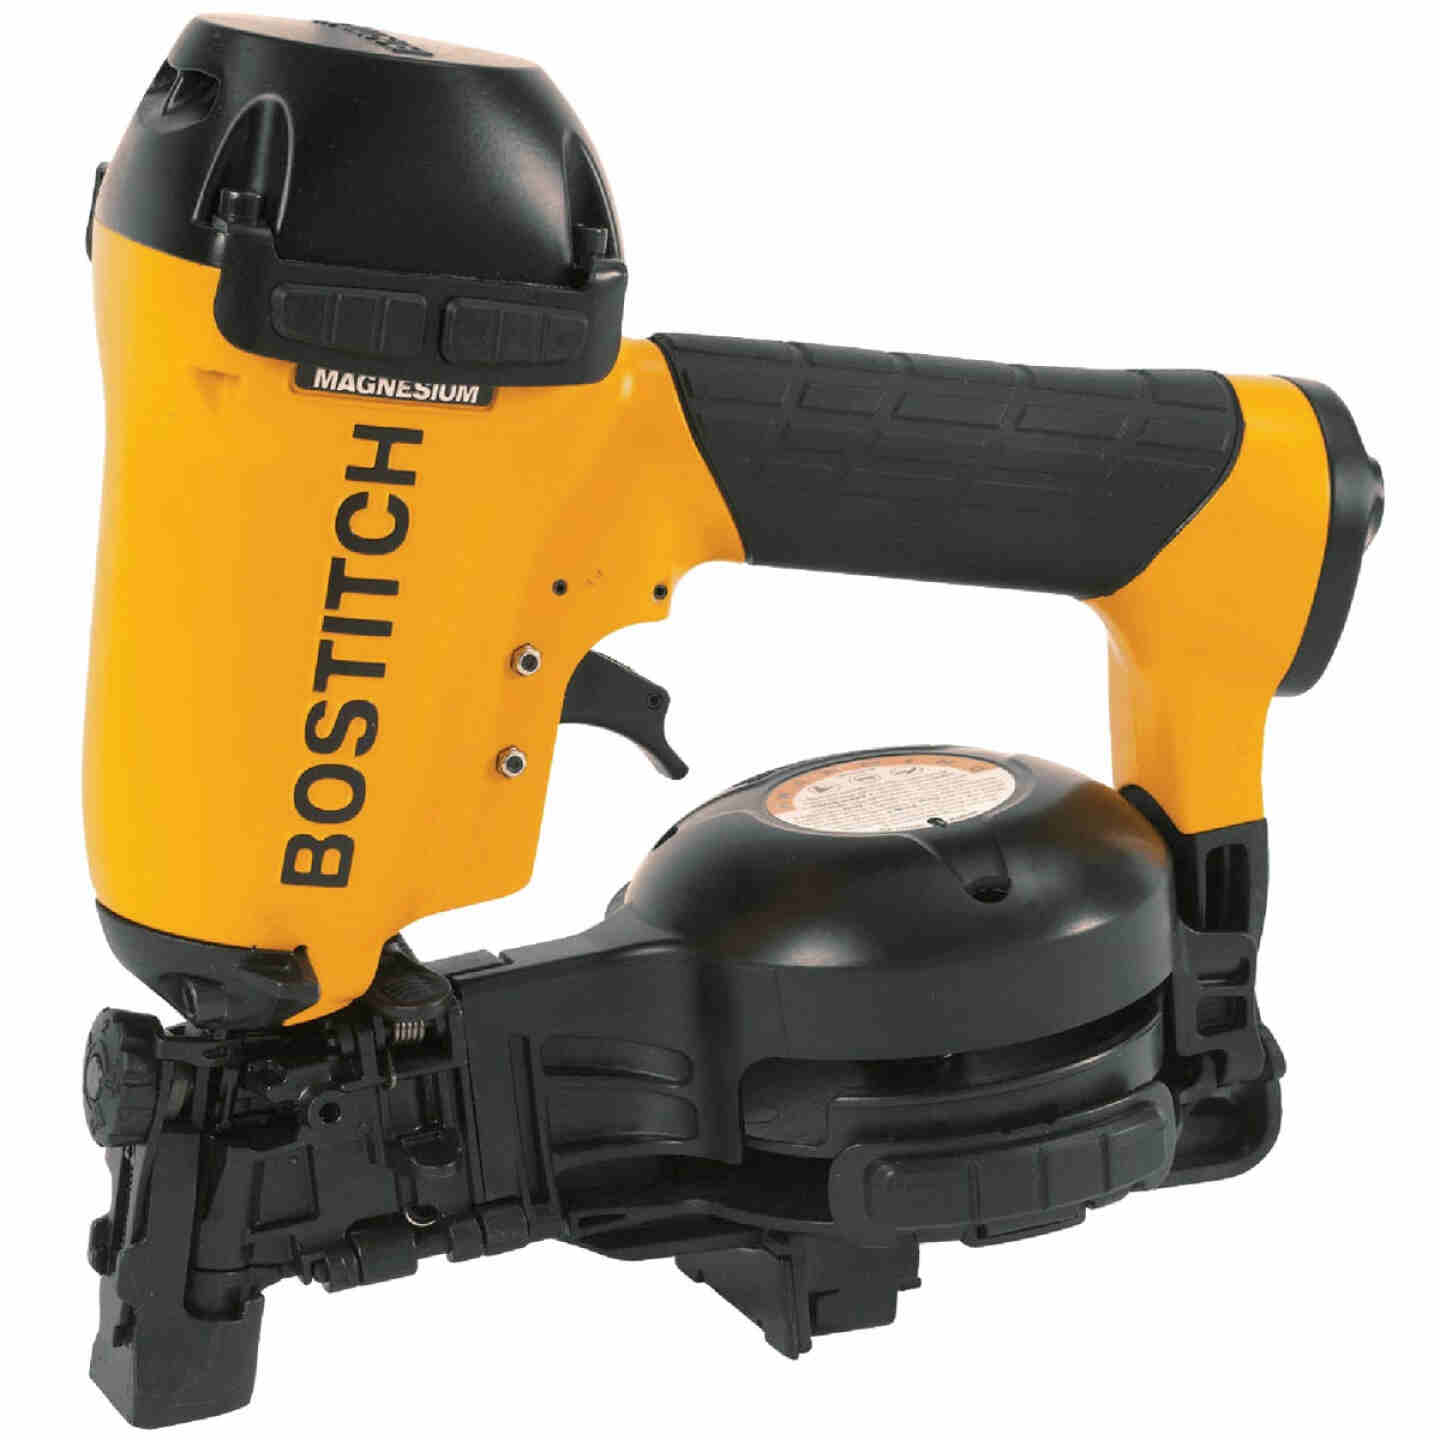 Bostitch 15 Degree 1-3/4 In. Coil Roofing Nailer Image 1